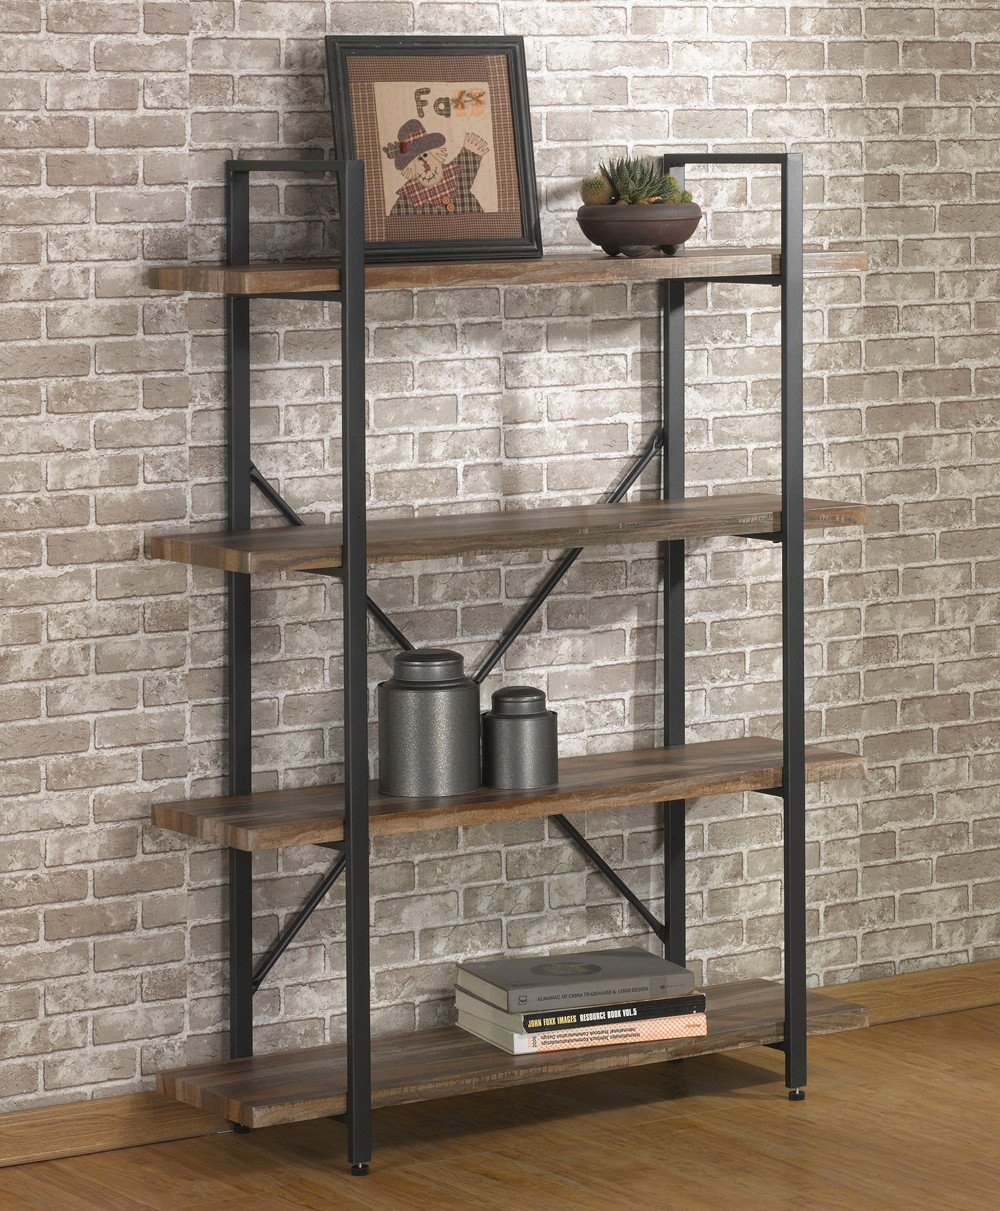 Amazon com ok furniture 4 tier bookcases and book shelves industrial vintage metal and wood bookcases furniture kitchen dining